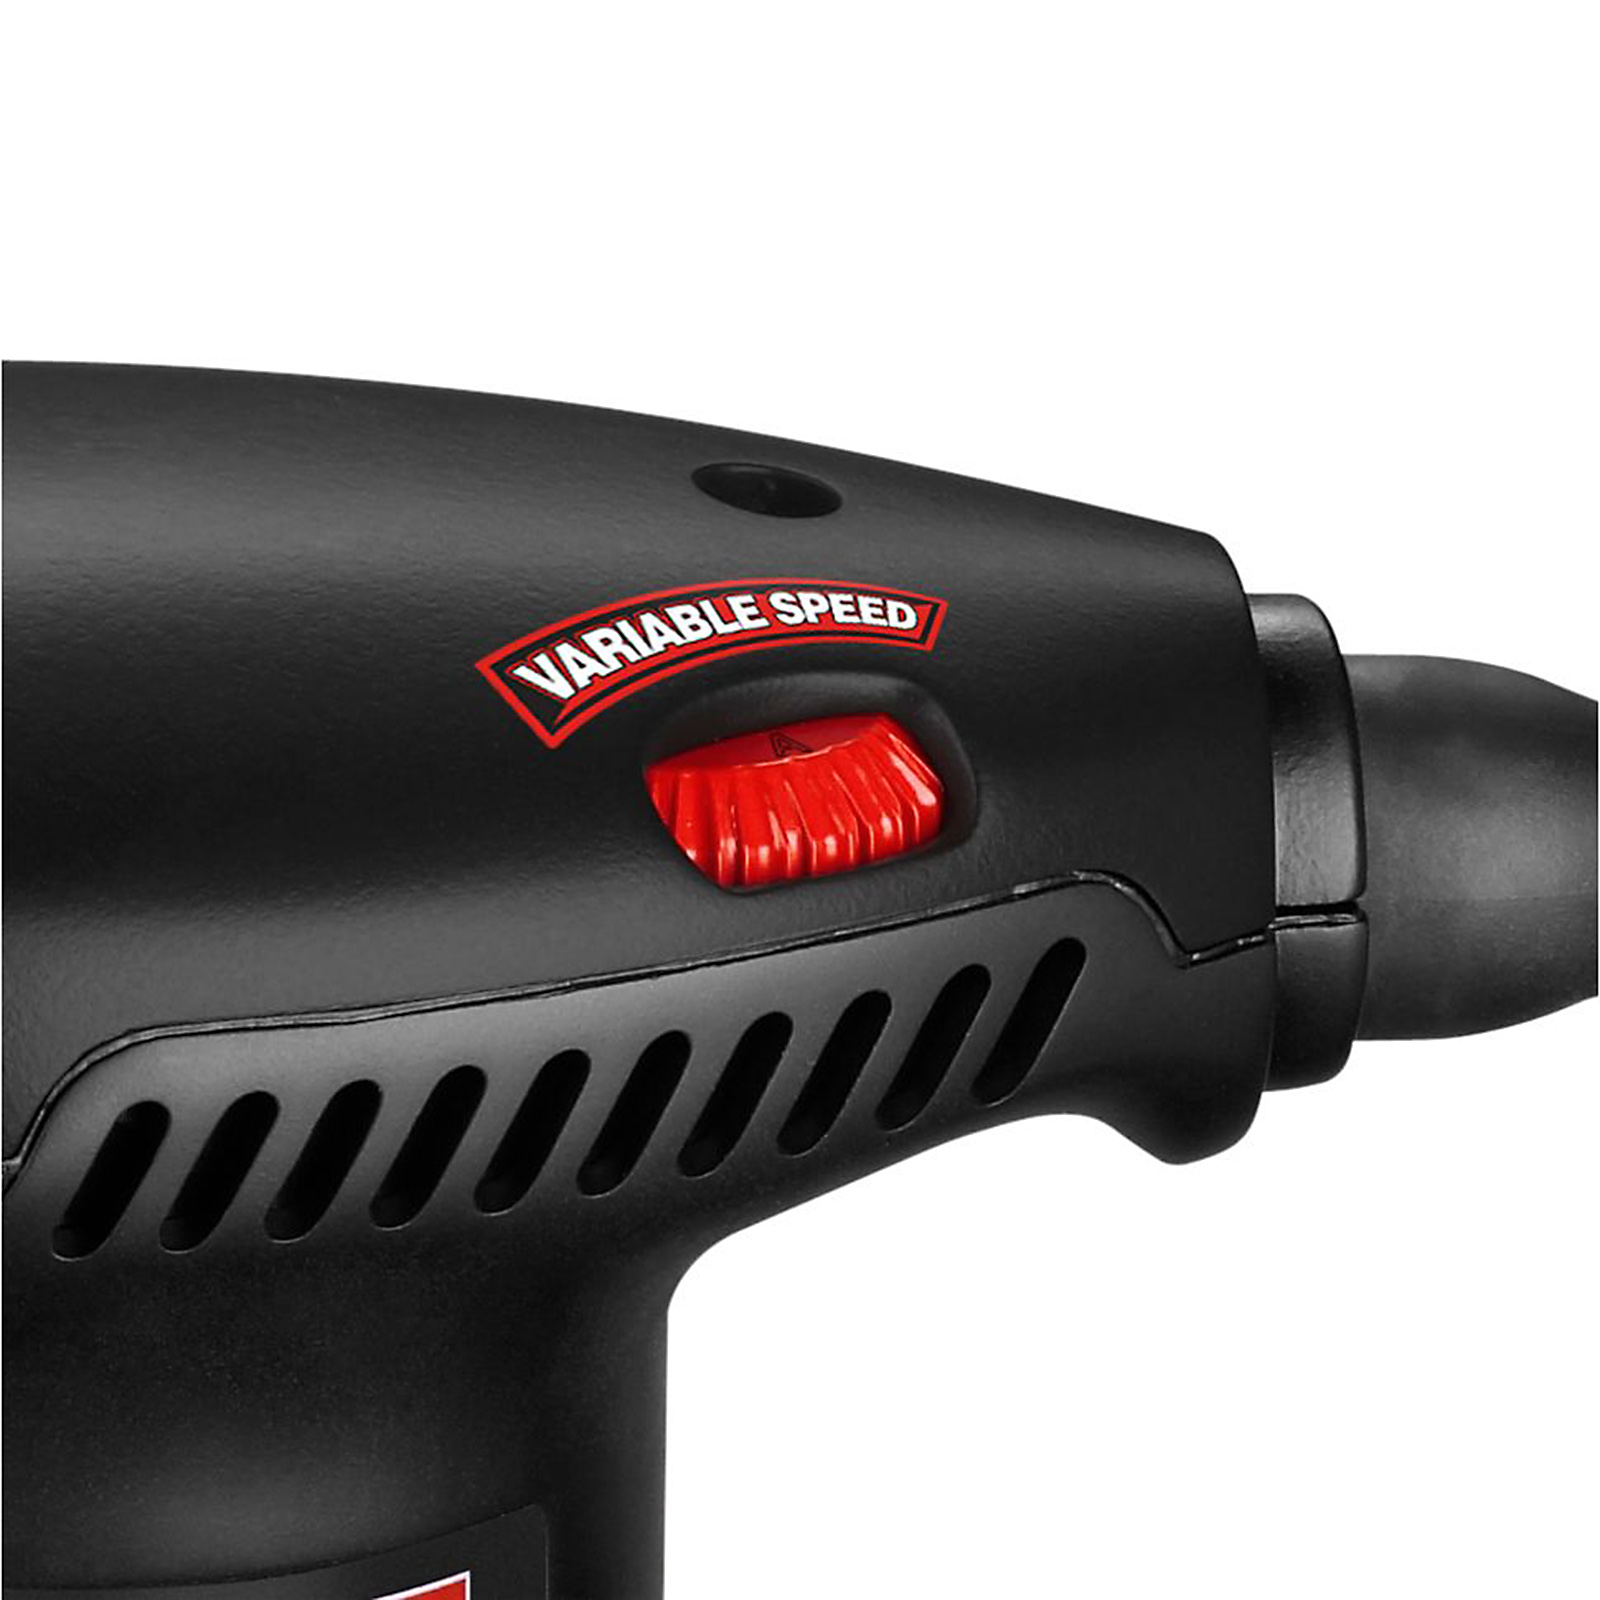 Craftsman 5 in. Random Orbit Sander